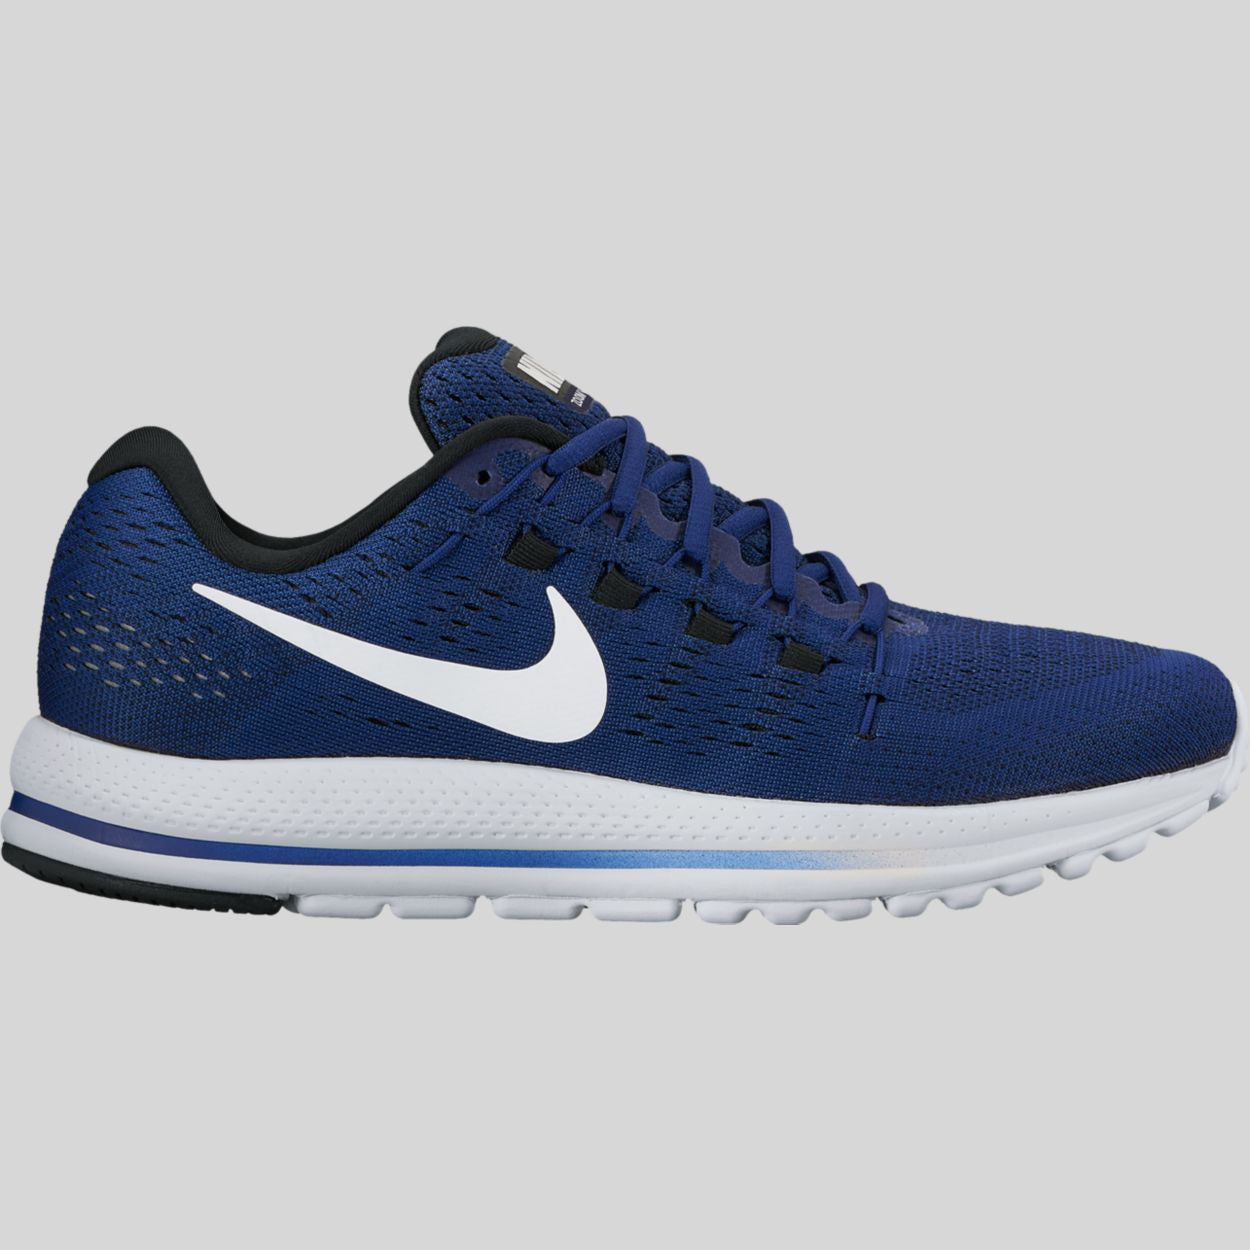 the best attitude cec45 5b3cd Nike Air Zoom Vomero 12 Deep Royal Blue Summit White Black (863762-401)